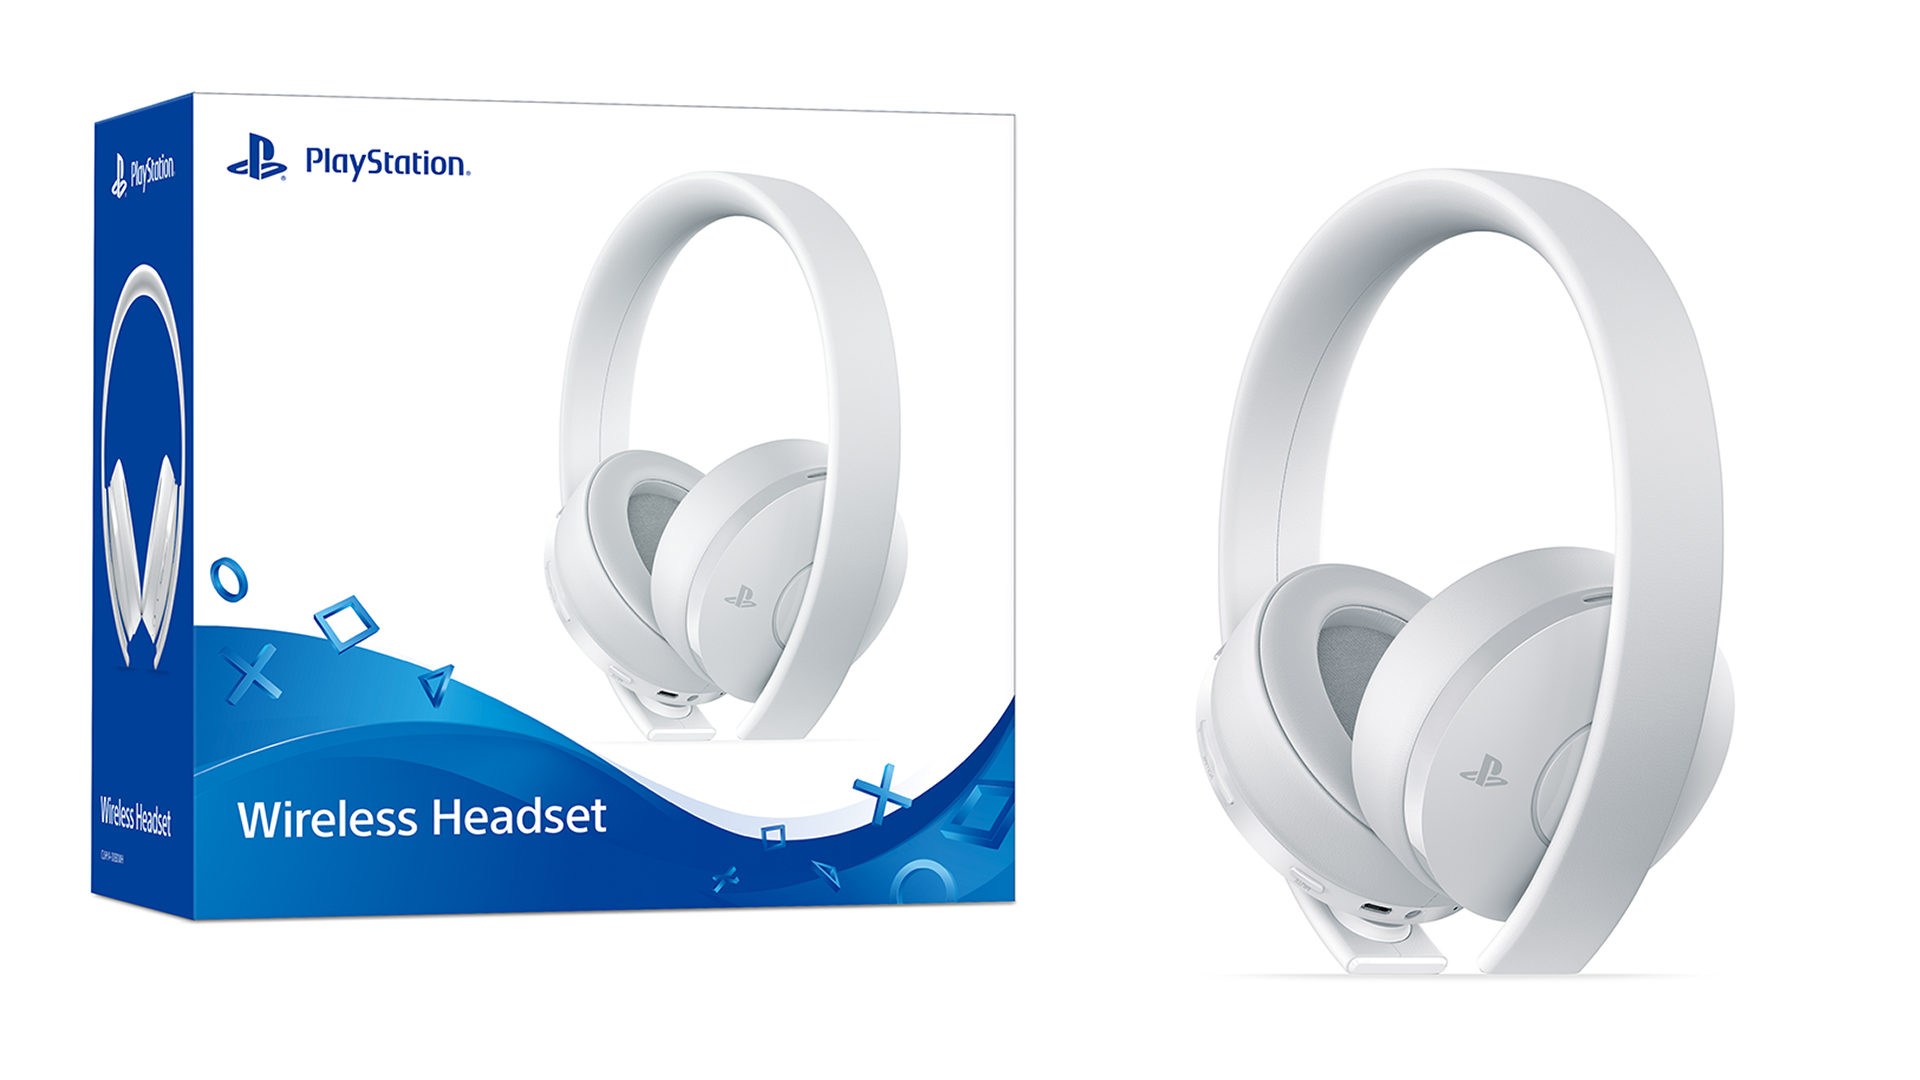 PS4 Wireless Headset - White 01